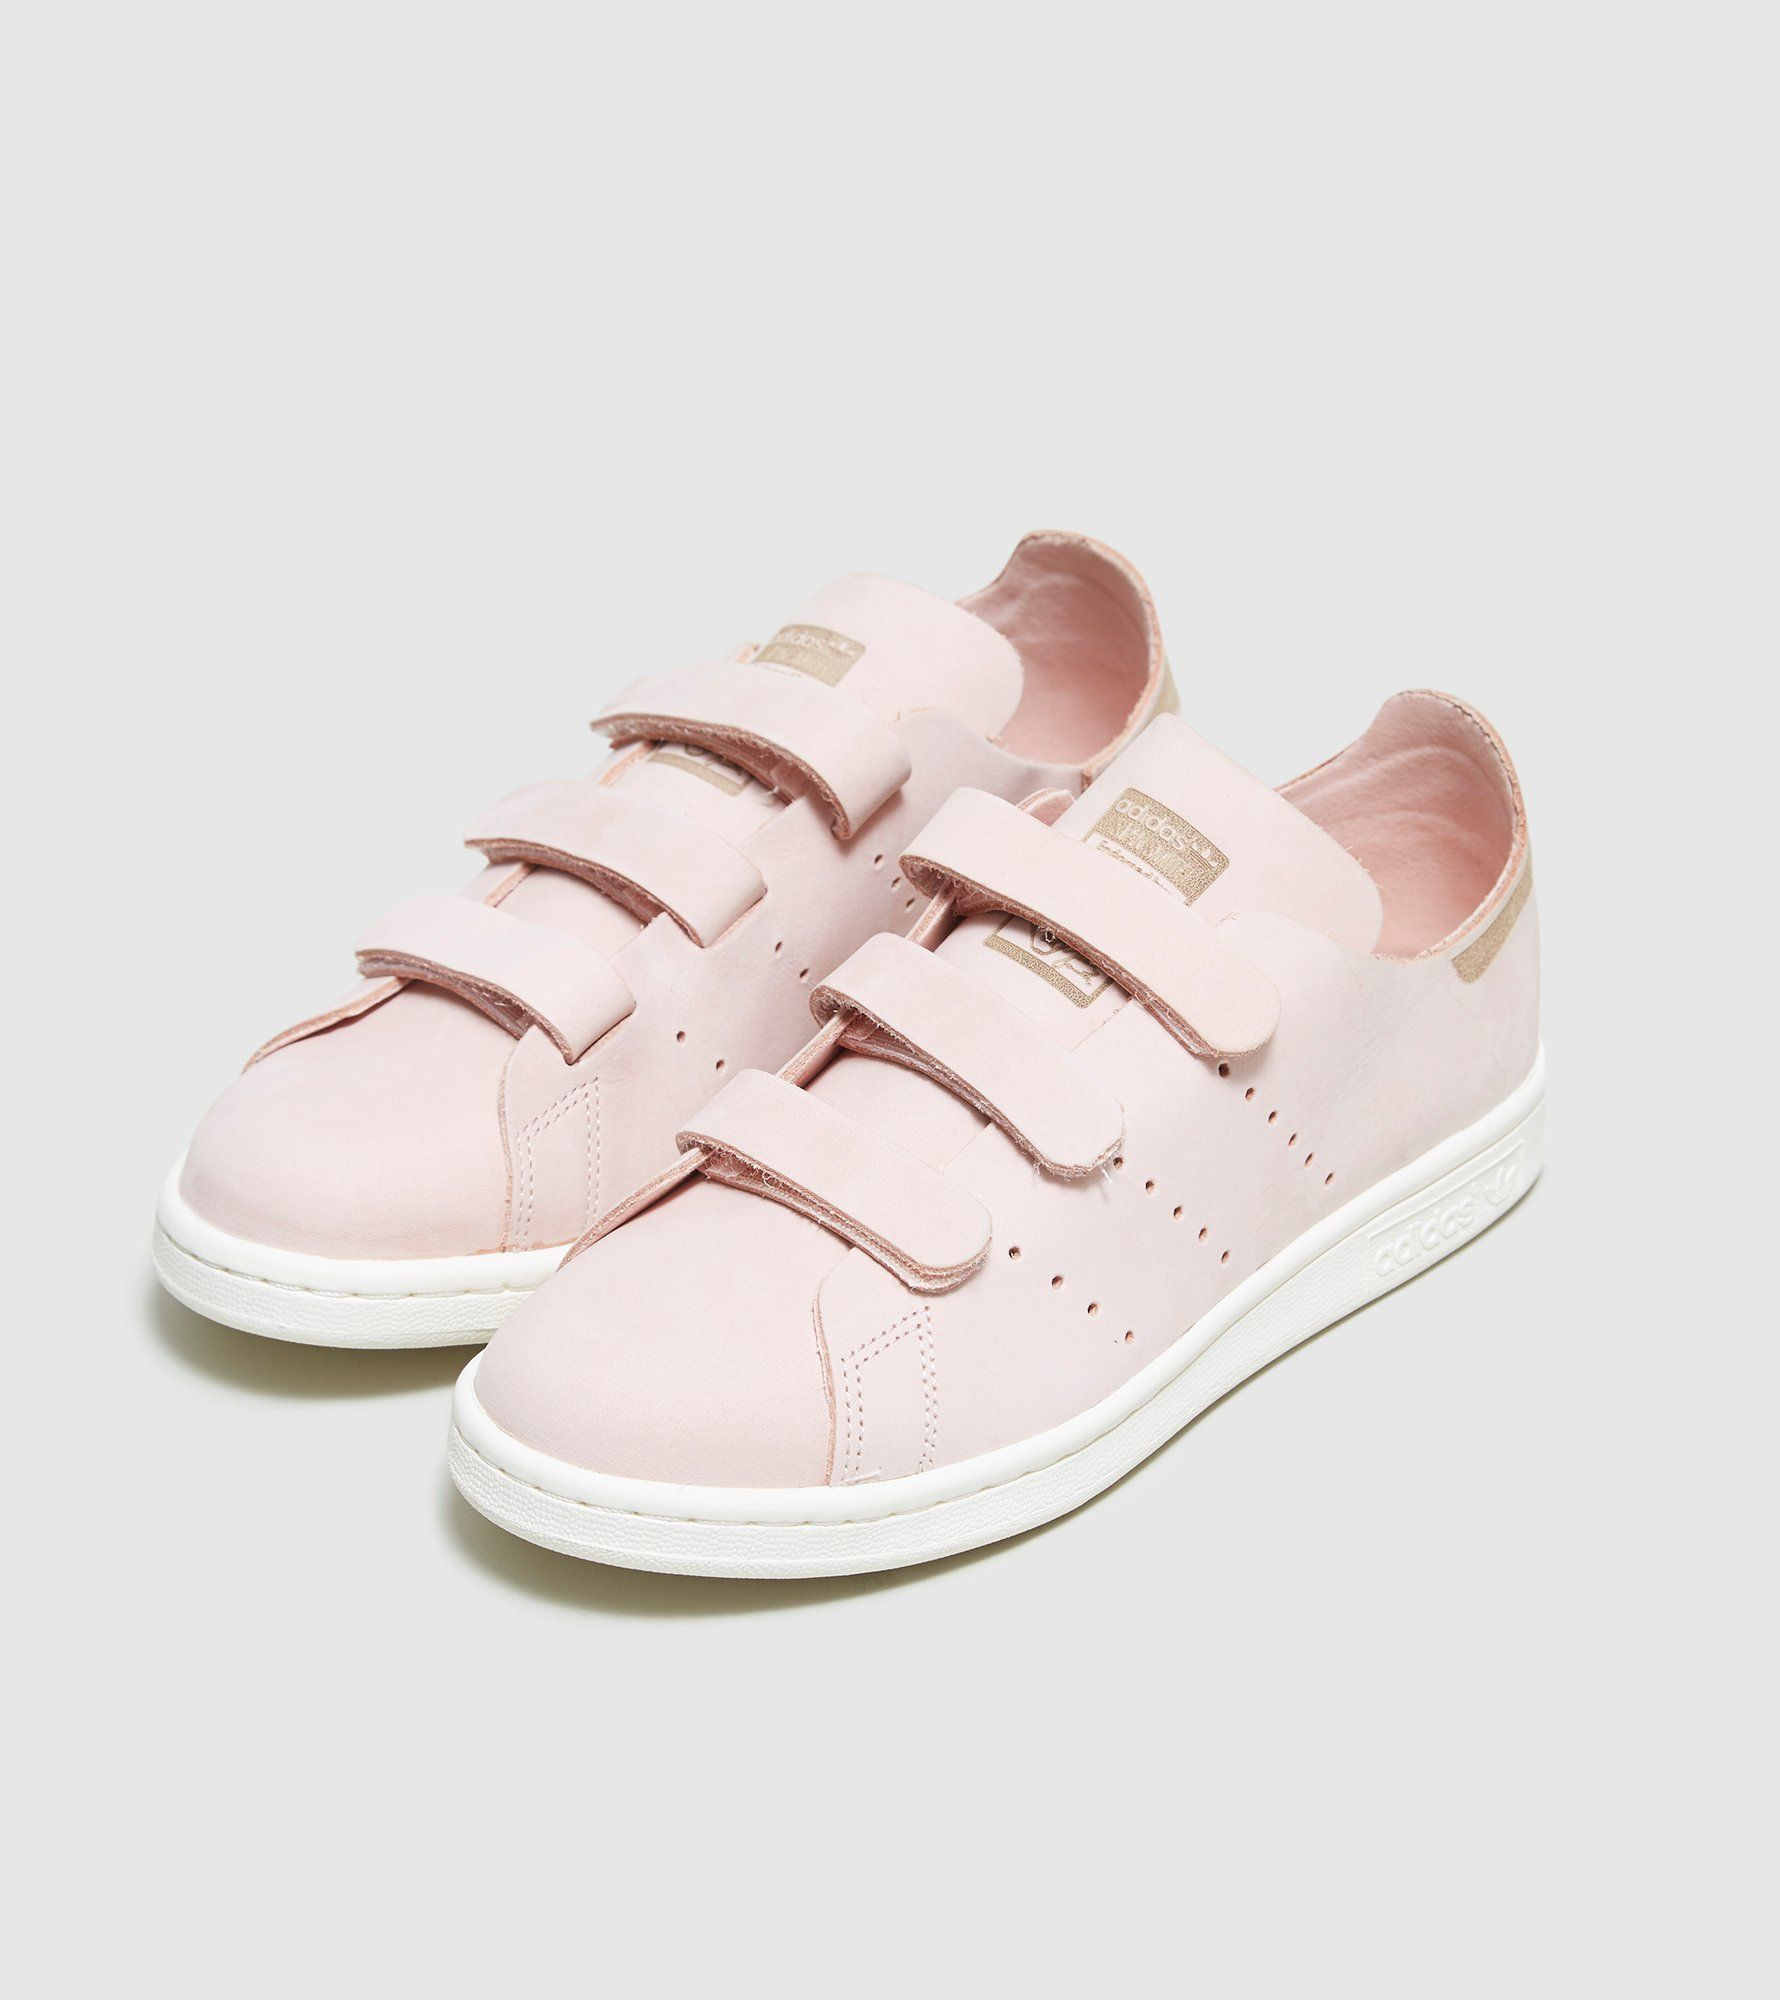 Stan Smith Mid Shoes Womens